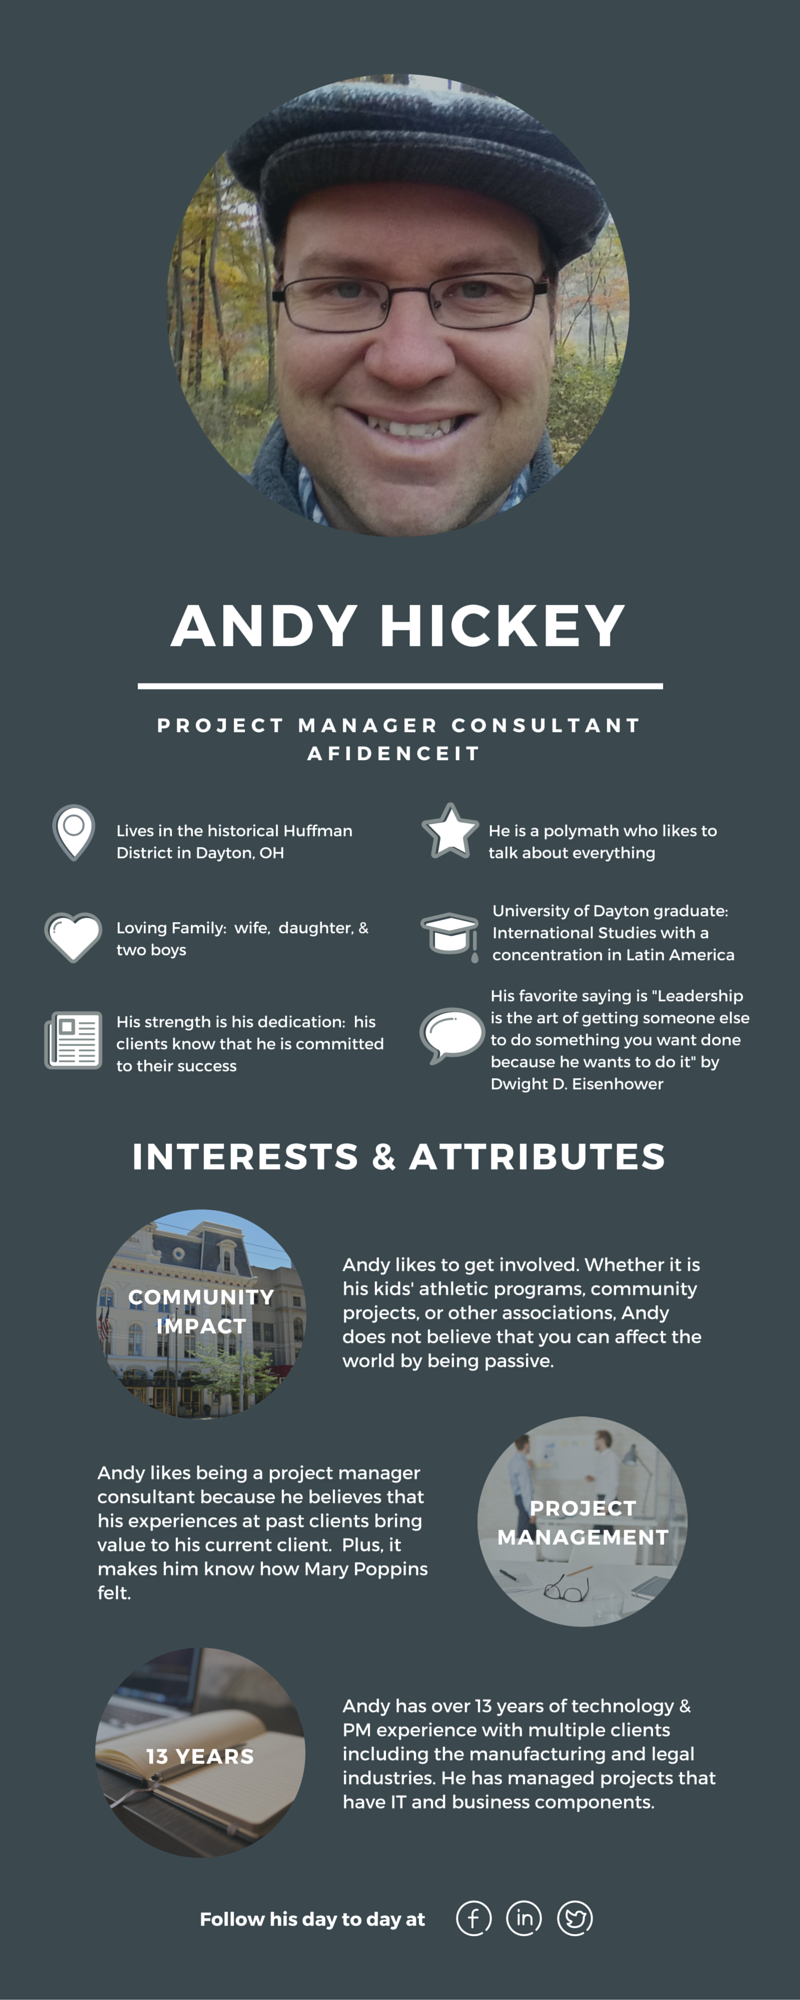 Meet Andy Hickey, Project Manager Consultant for AfidenceIT